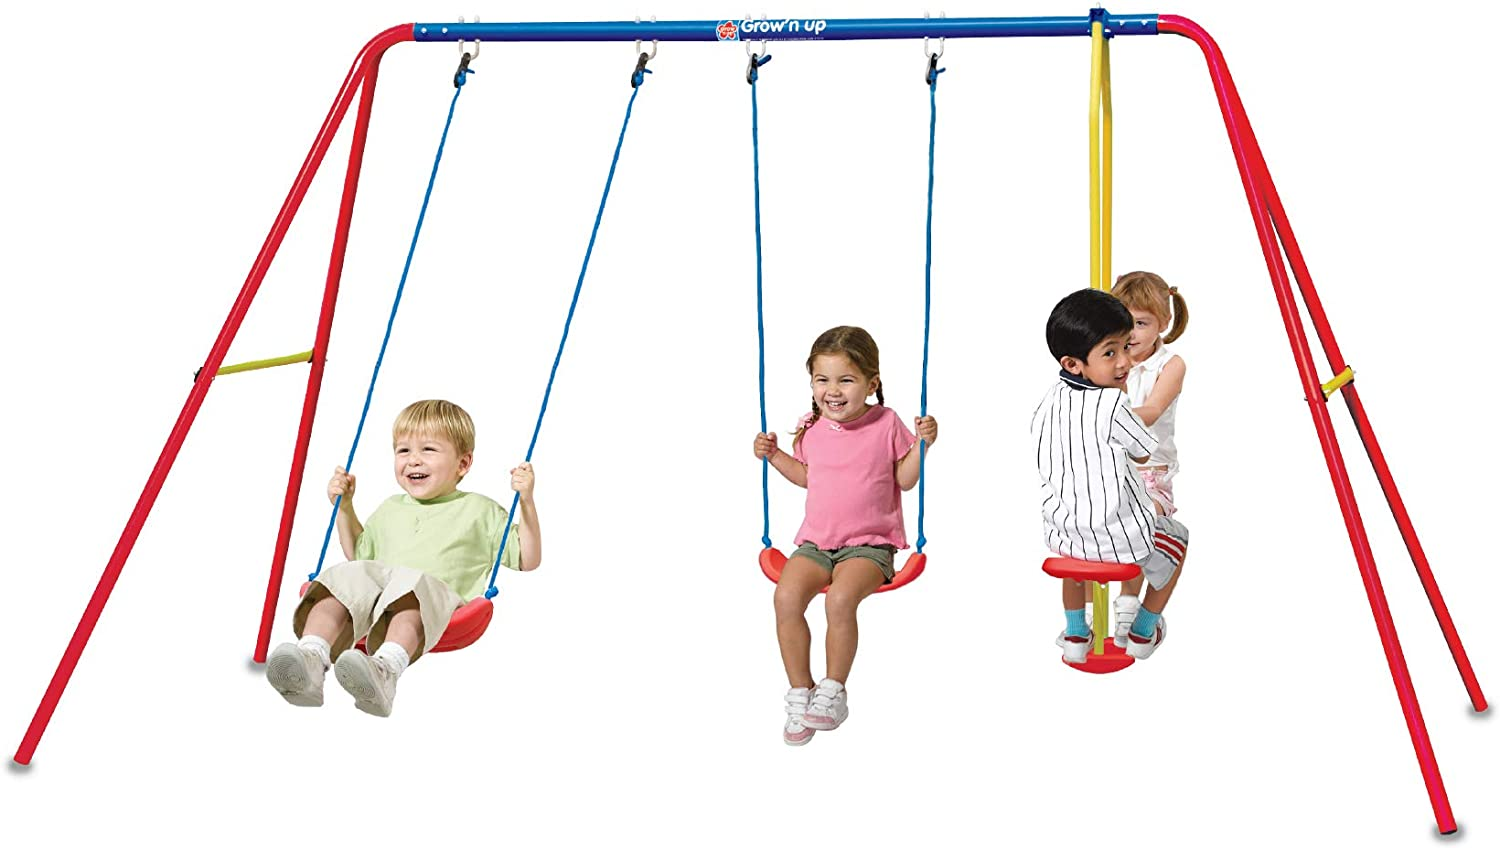 Grow'n Up Qwikflip Heracles III Triple Swing Set